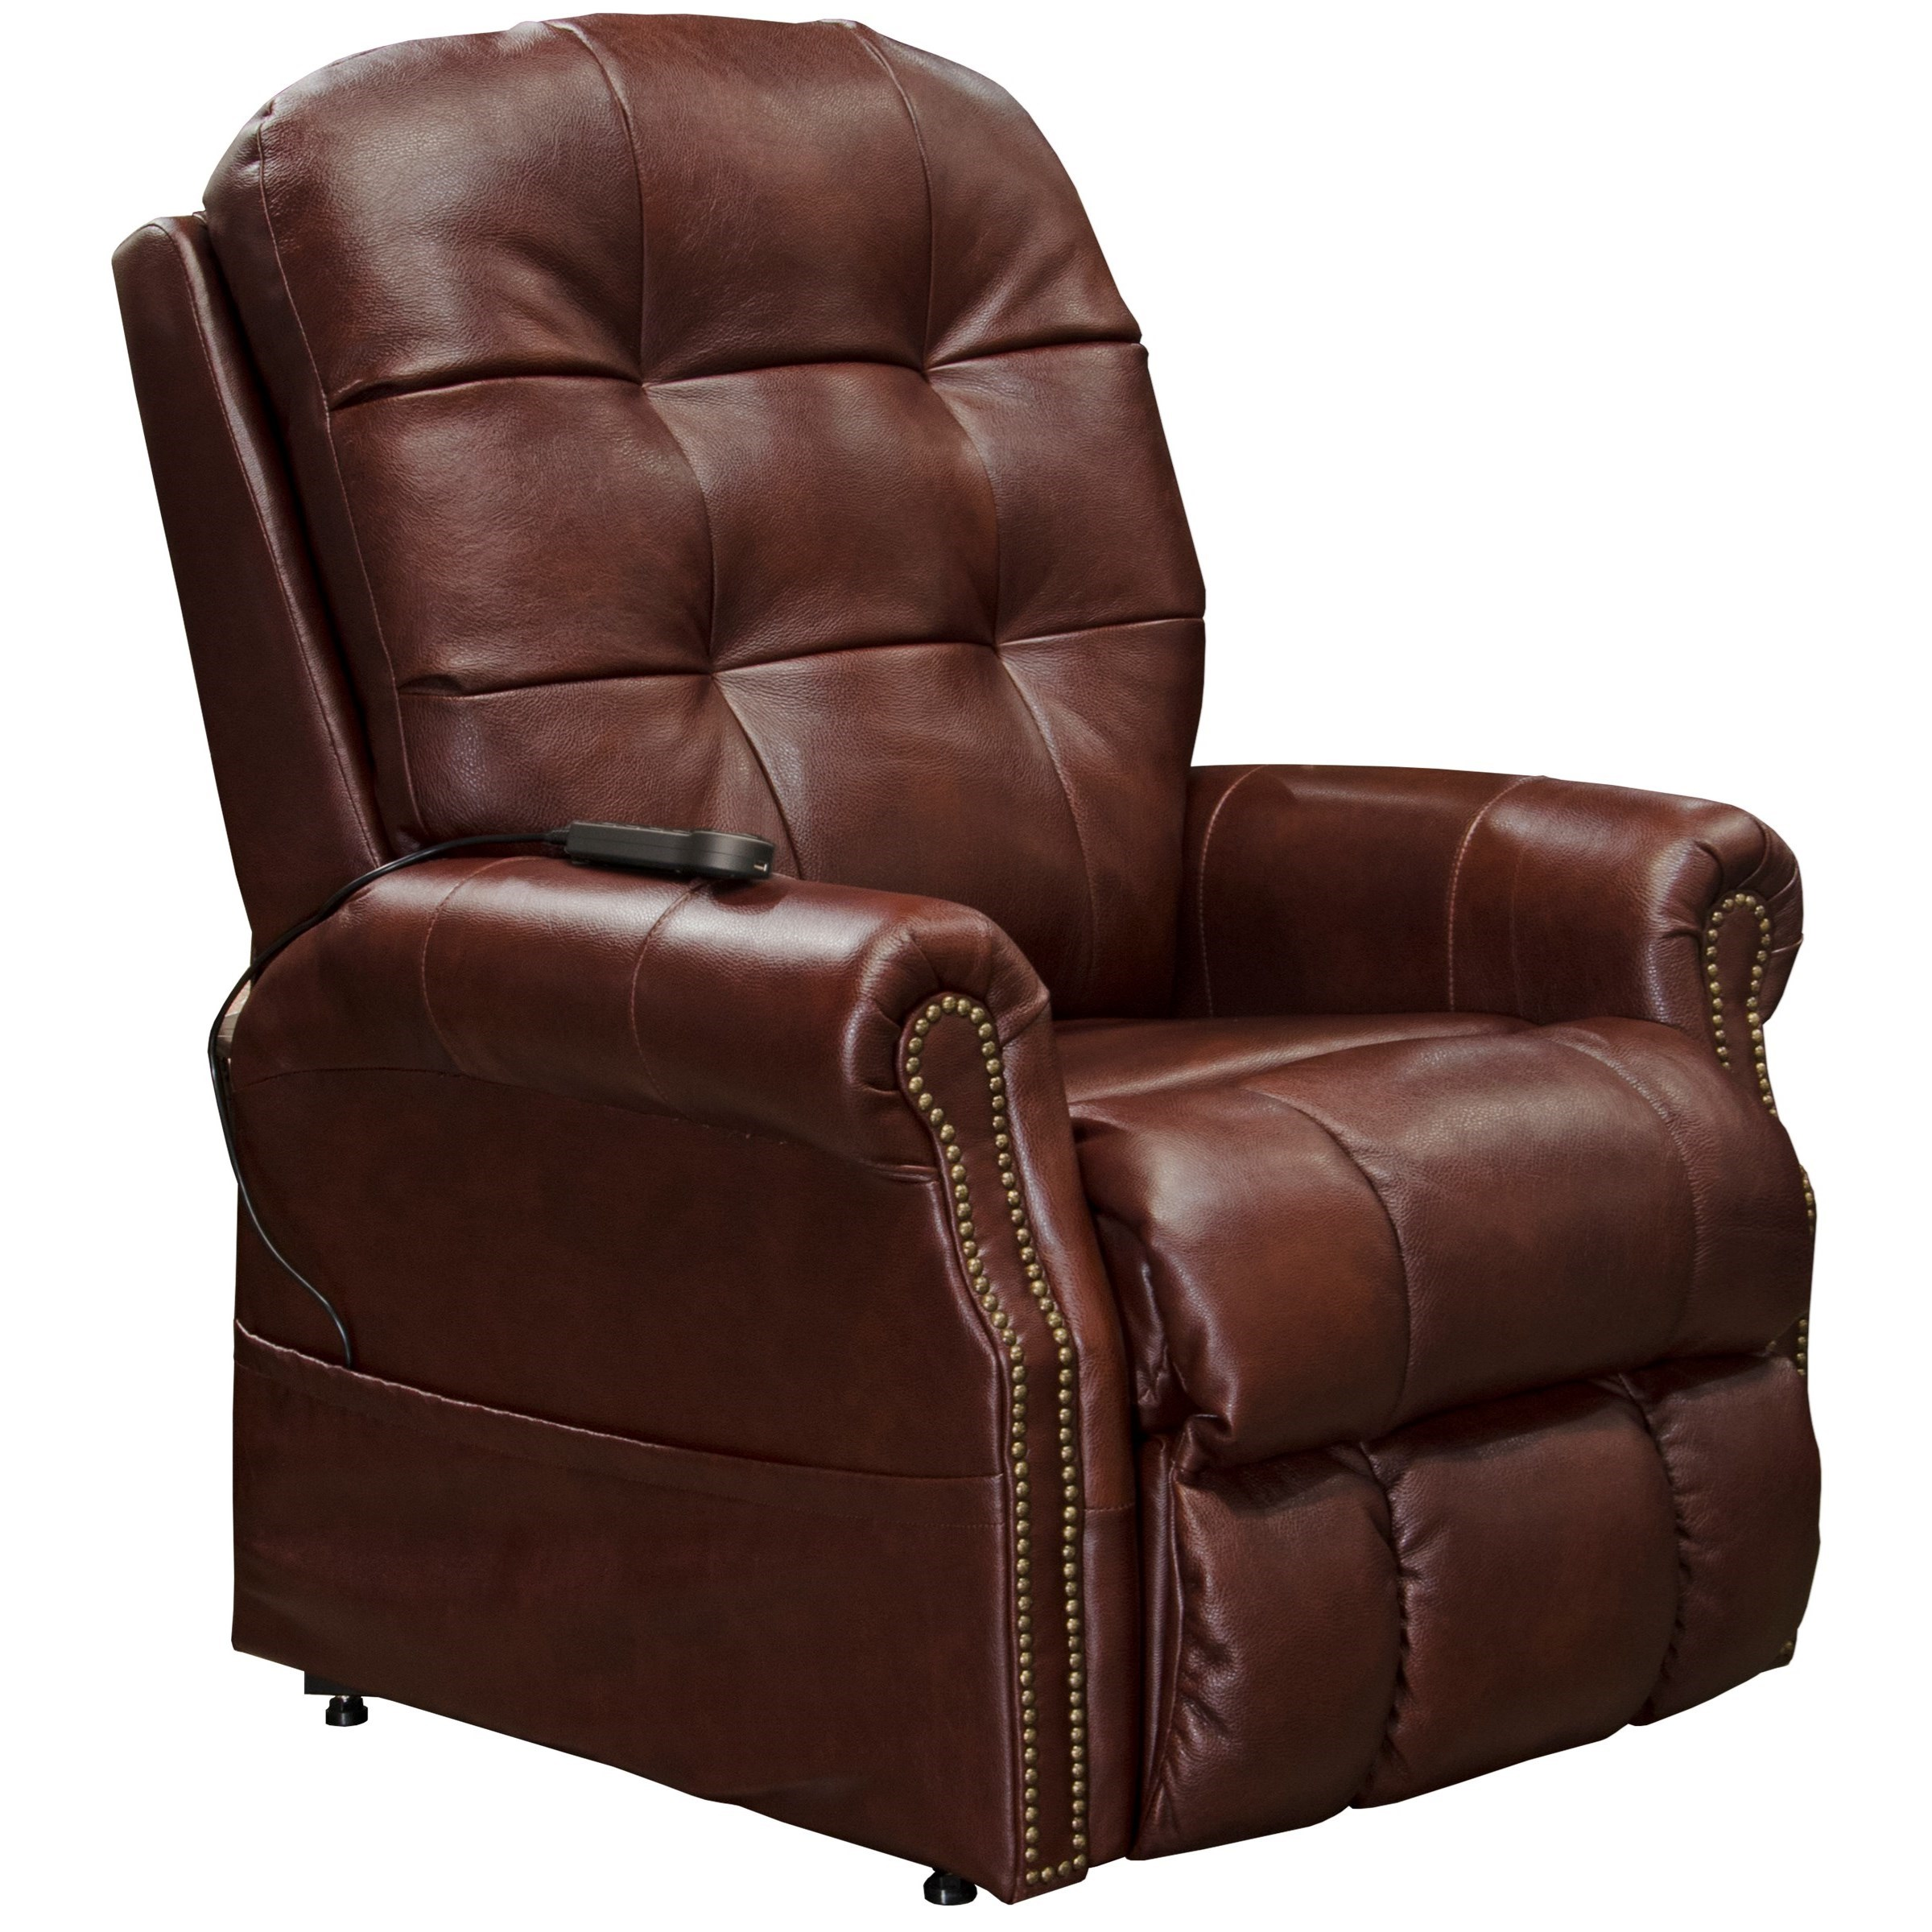 Madison Power Lift Lay Flat Recliner by Catnapper at Value City Furniture